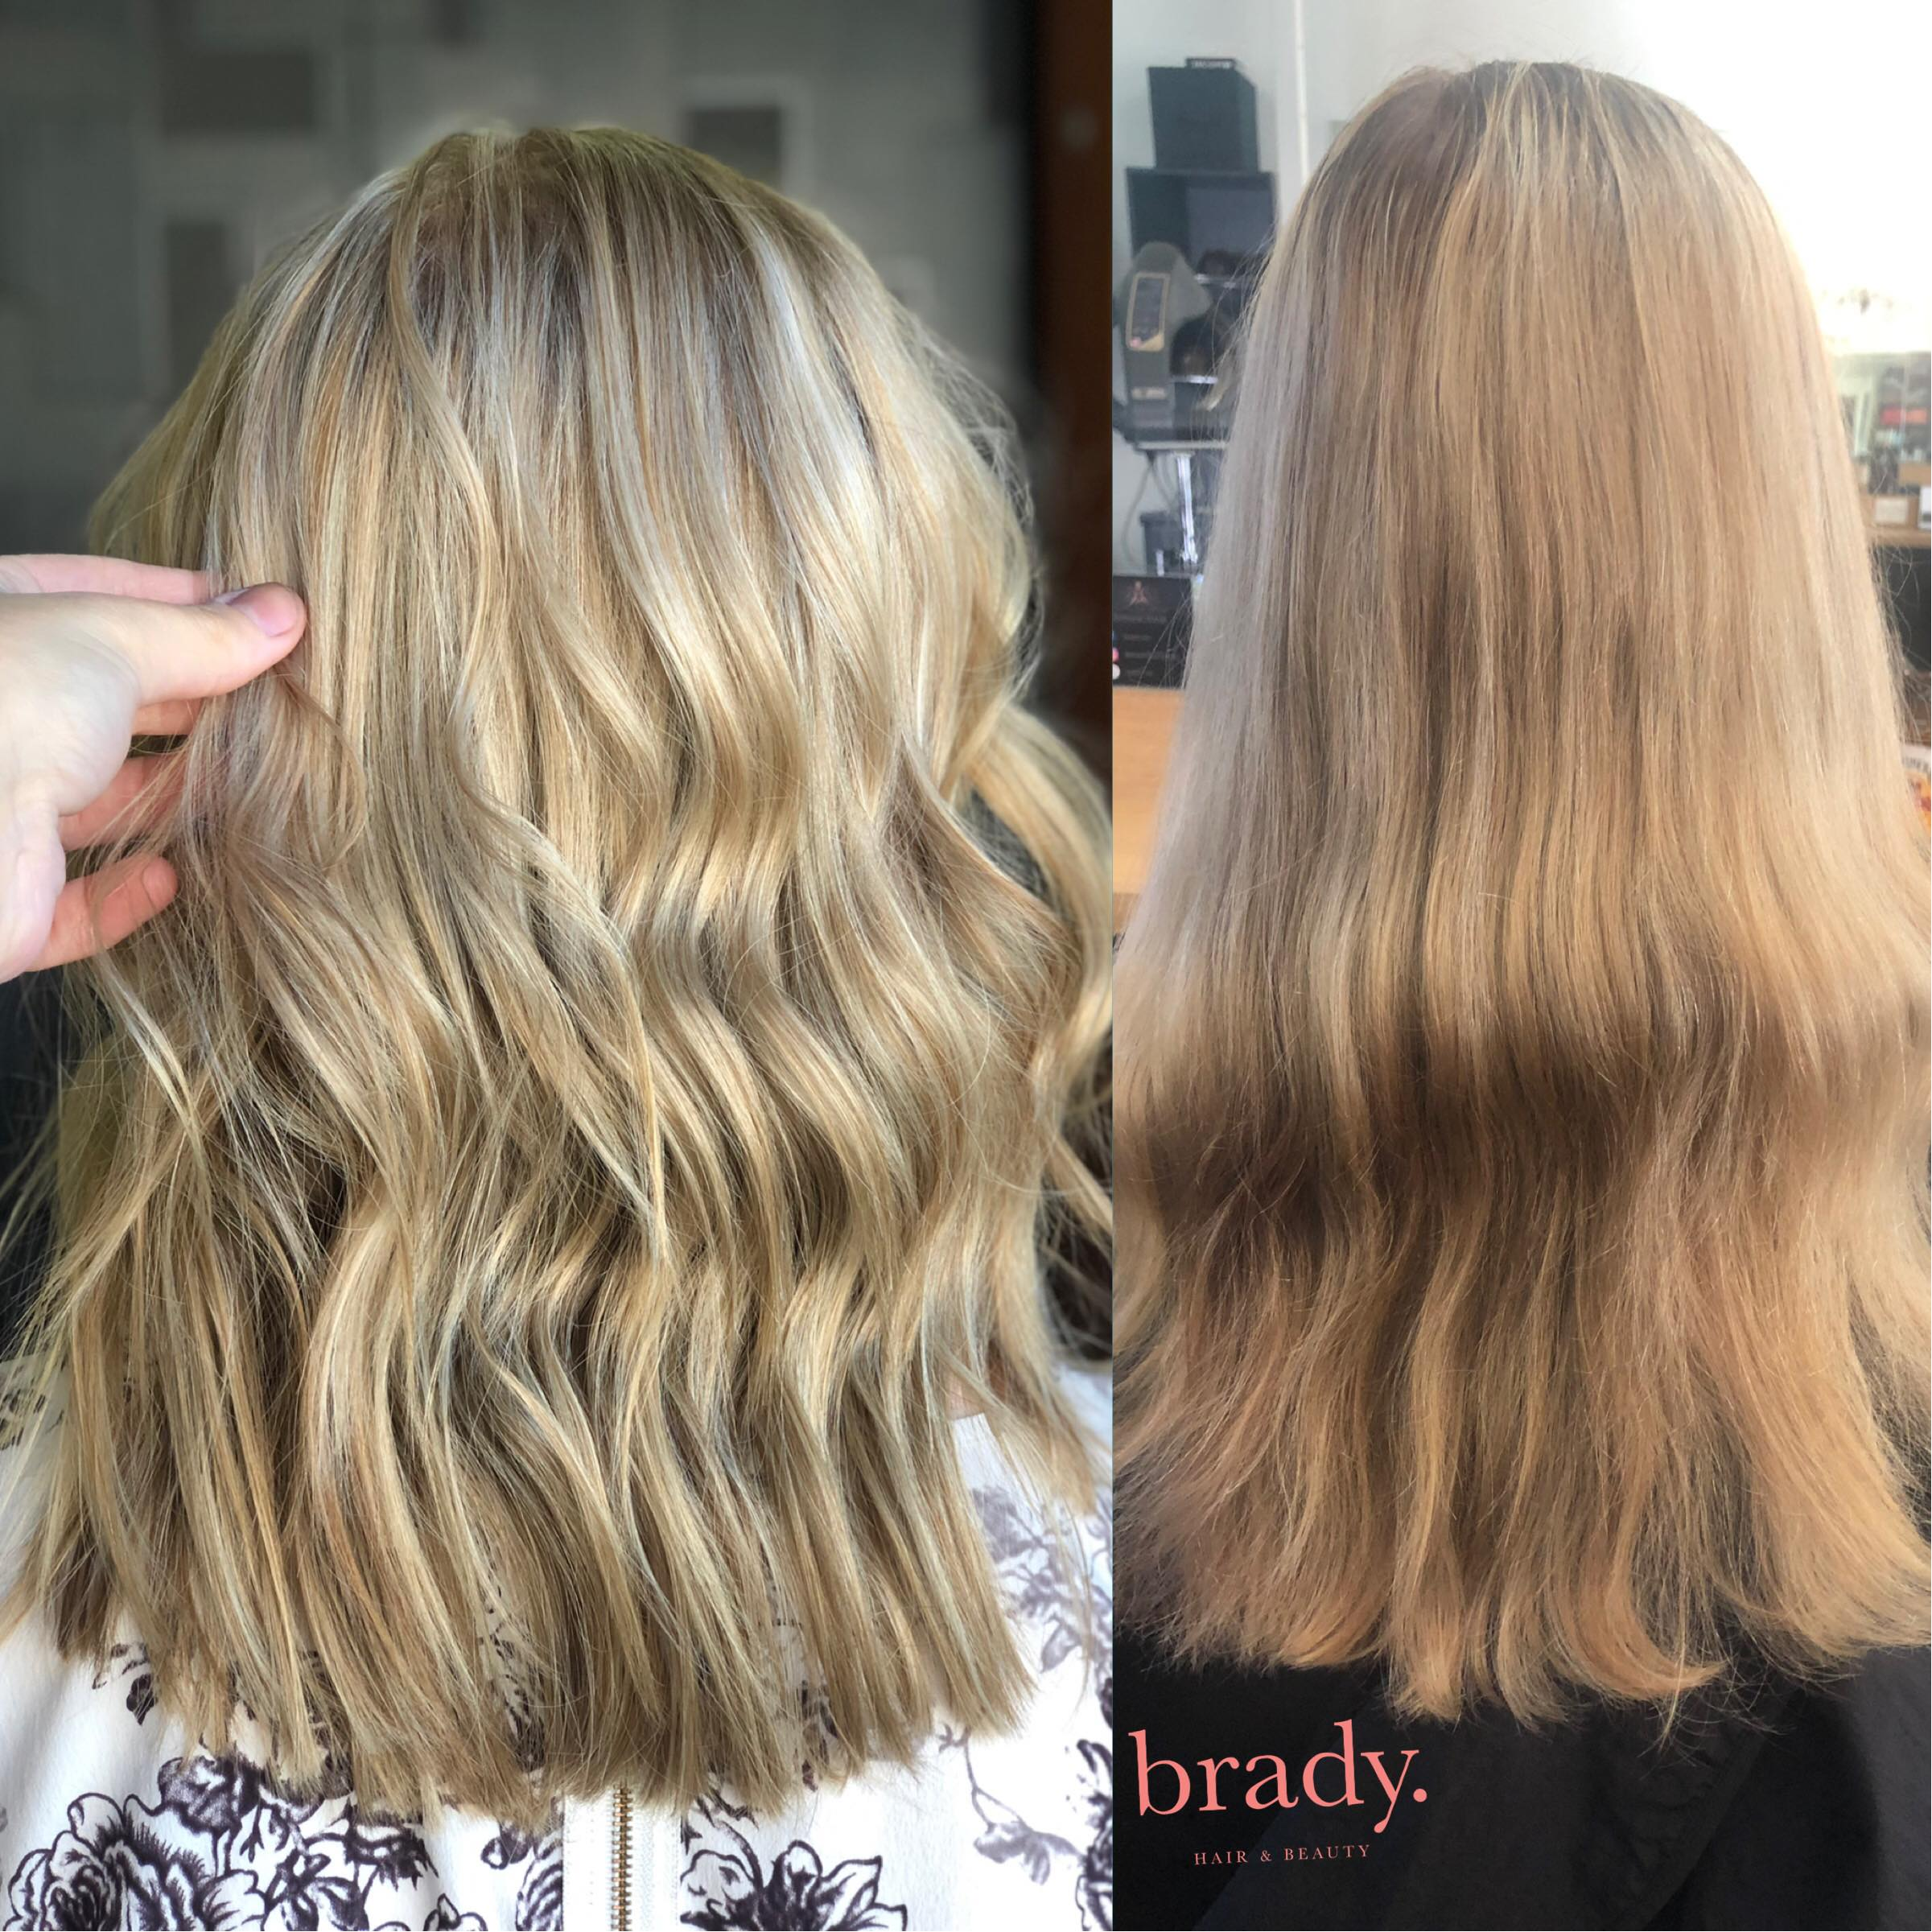 Before and after photo of woman with long medium ash blonde hair. Styled by Brady. Hair & Beauty, Toowong, Brisbane.